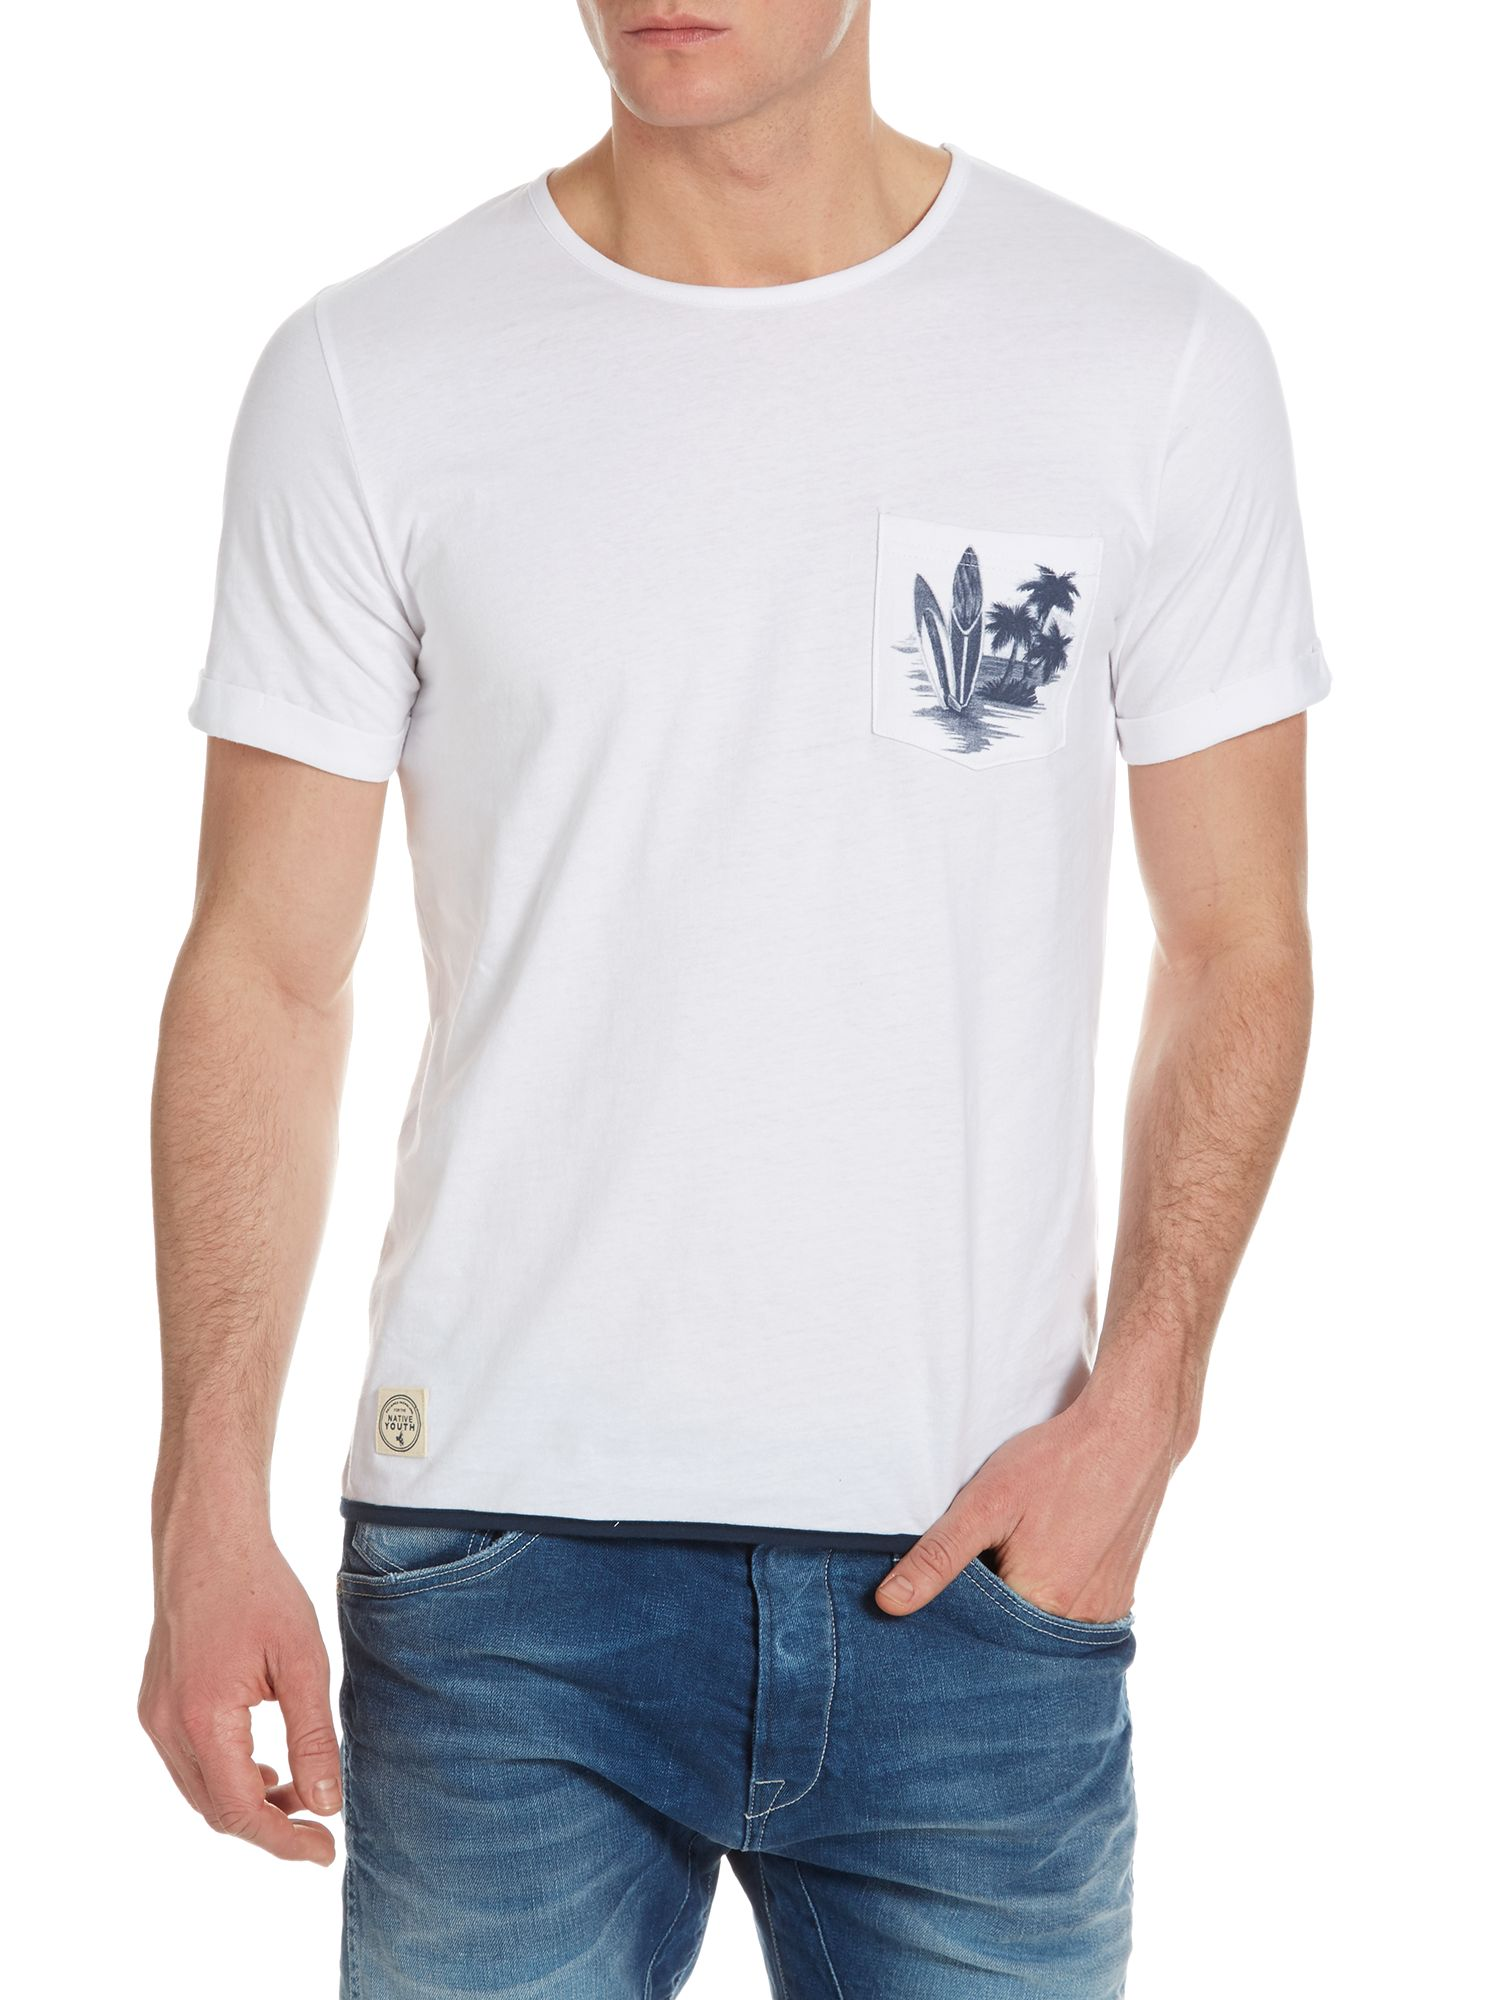 Surfboard pocket t-shirt